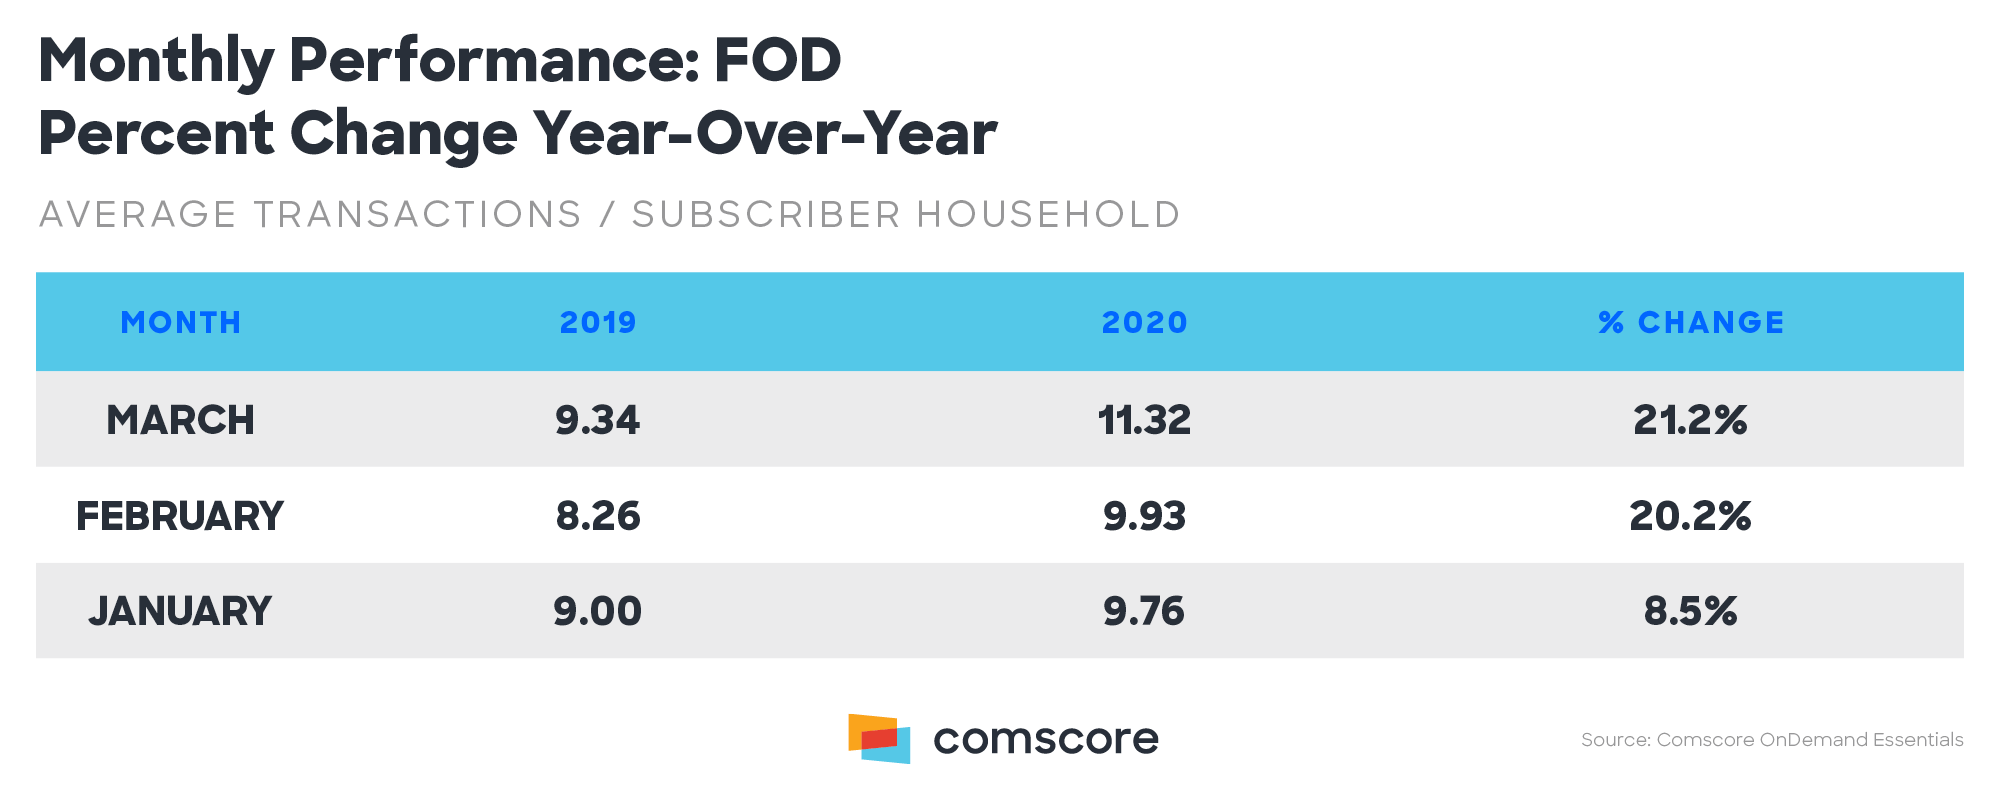 Monthly Performance All FOD Percent Change Year over Year